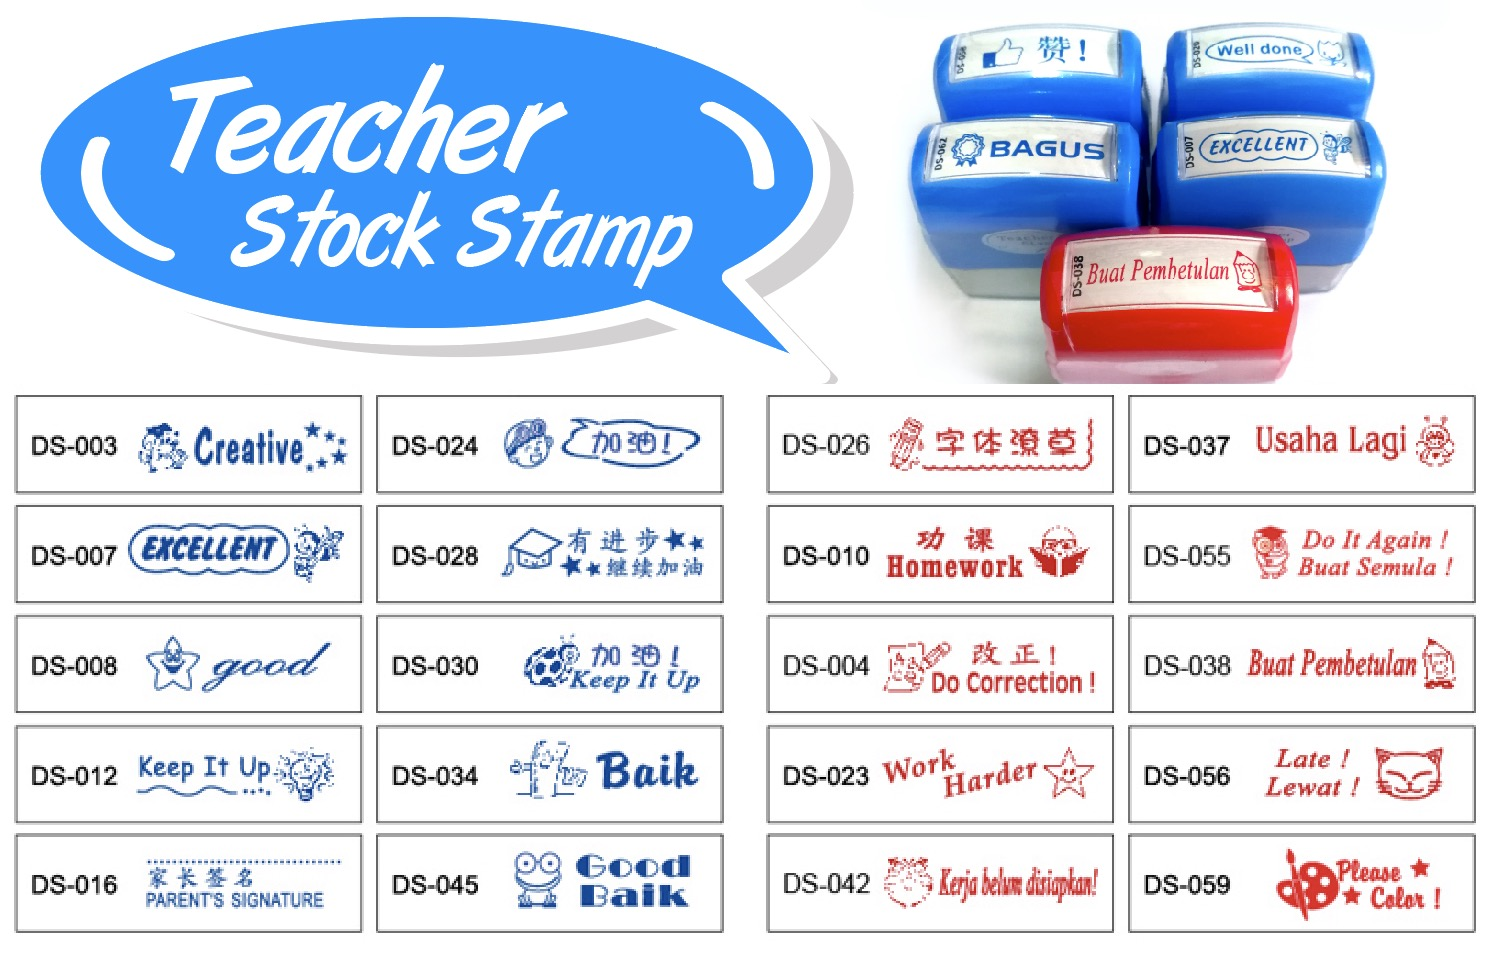 Teacher Stock Stamp